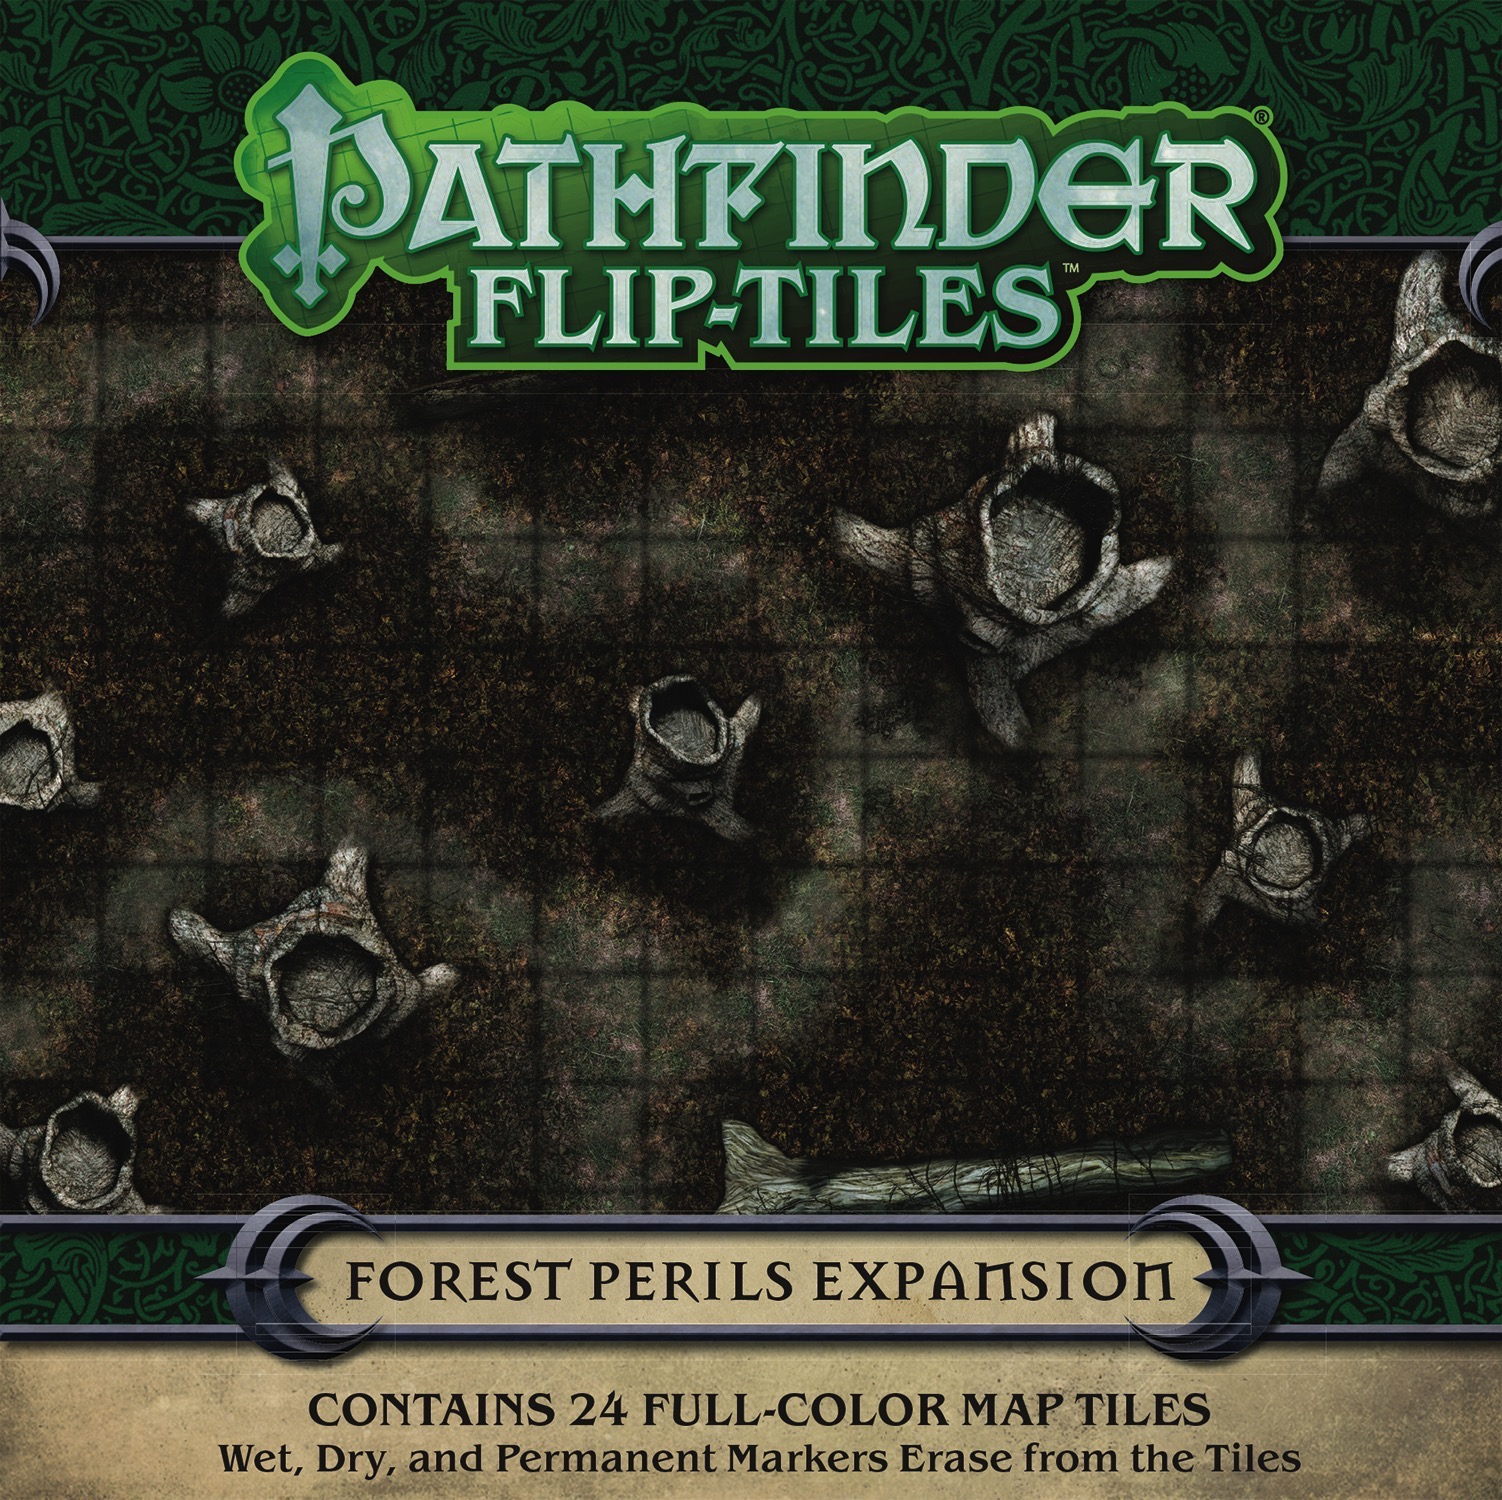 Pathfinder Rpg: Flip-tiles - Forest Perils Expansion Box Front